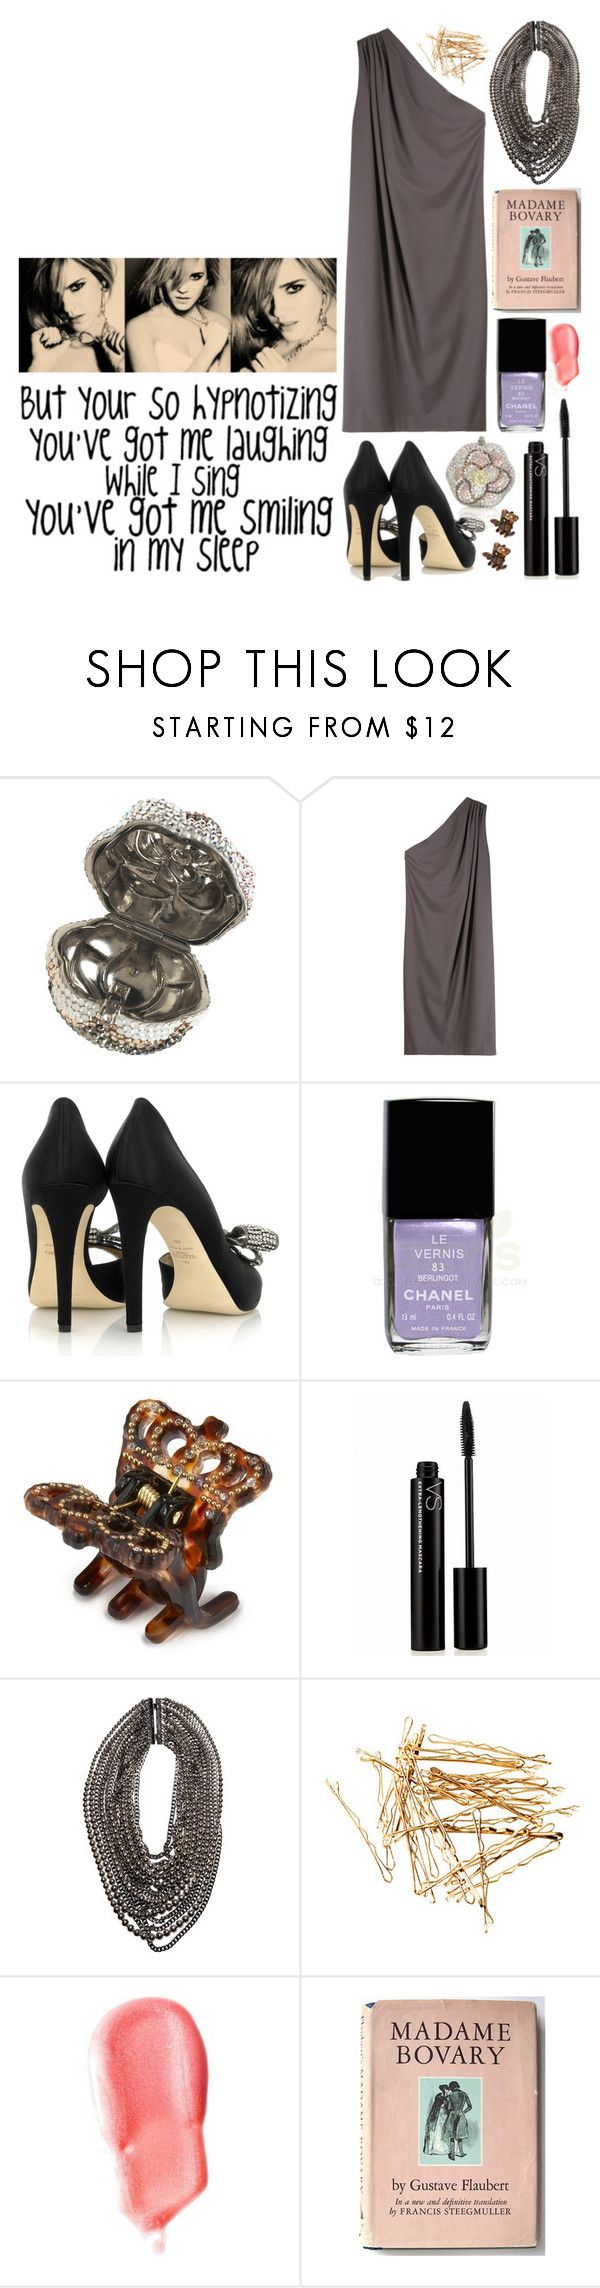 """""""101. catch me - demi lovato"""" by michellelyn ❤ liked on Polyvore featuring Emma Watson, Leiber, Halston, Valentino, Chanel, Juicy Couture, Victoria's Secret, Givenchy, H&M and Benefit"""